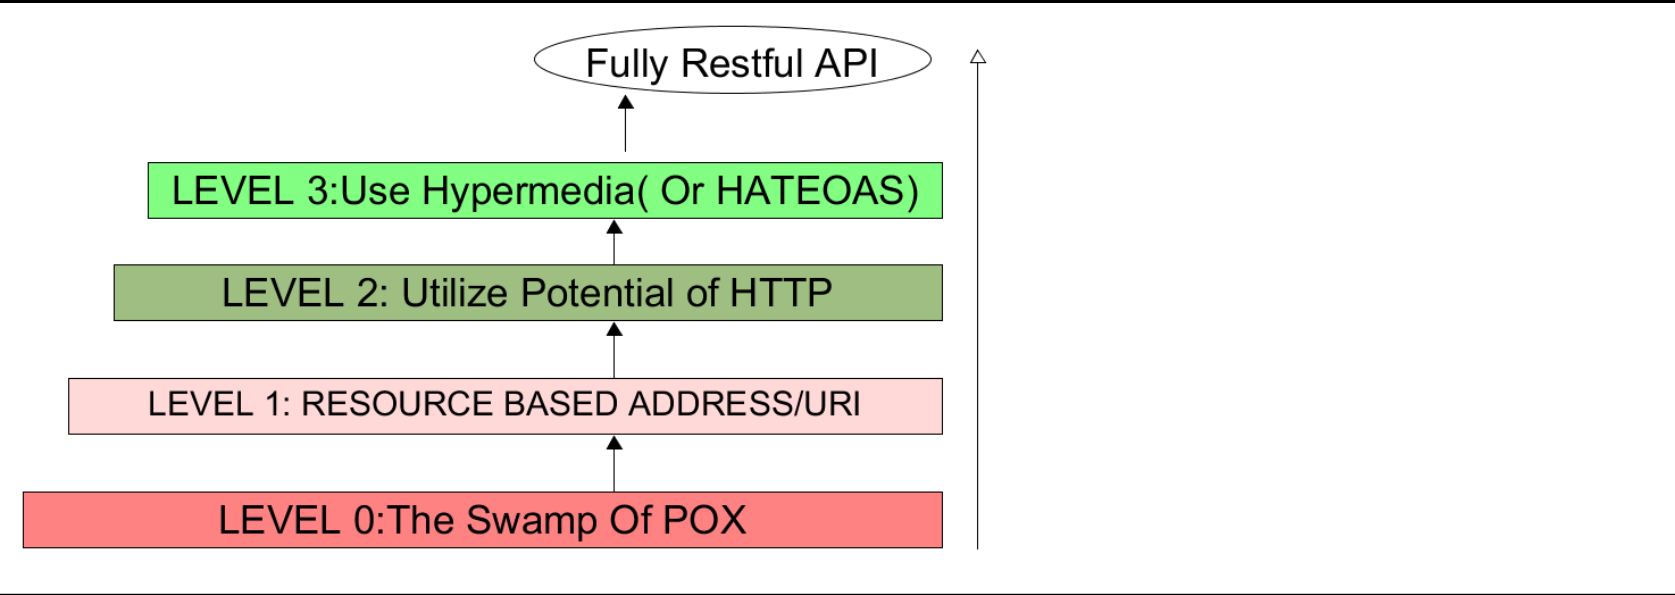 Know how RESTful your API is: An Overview of the Richardson Maturity